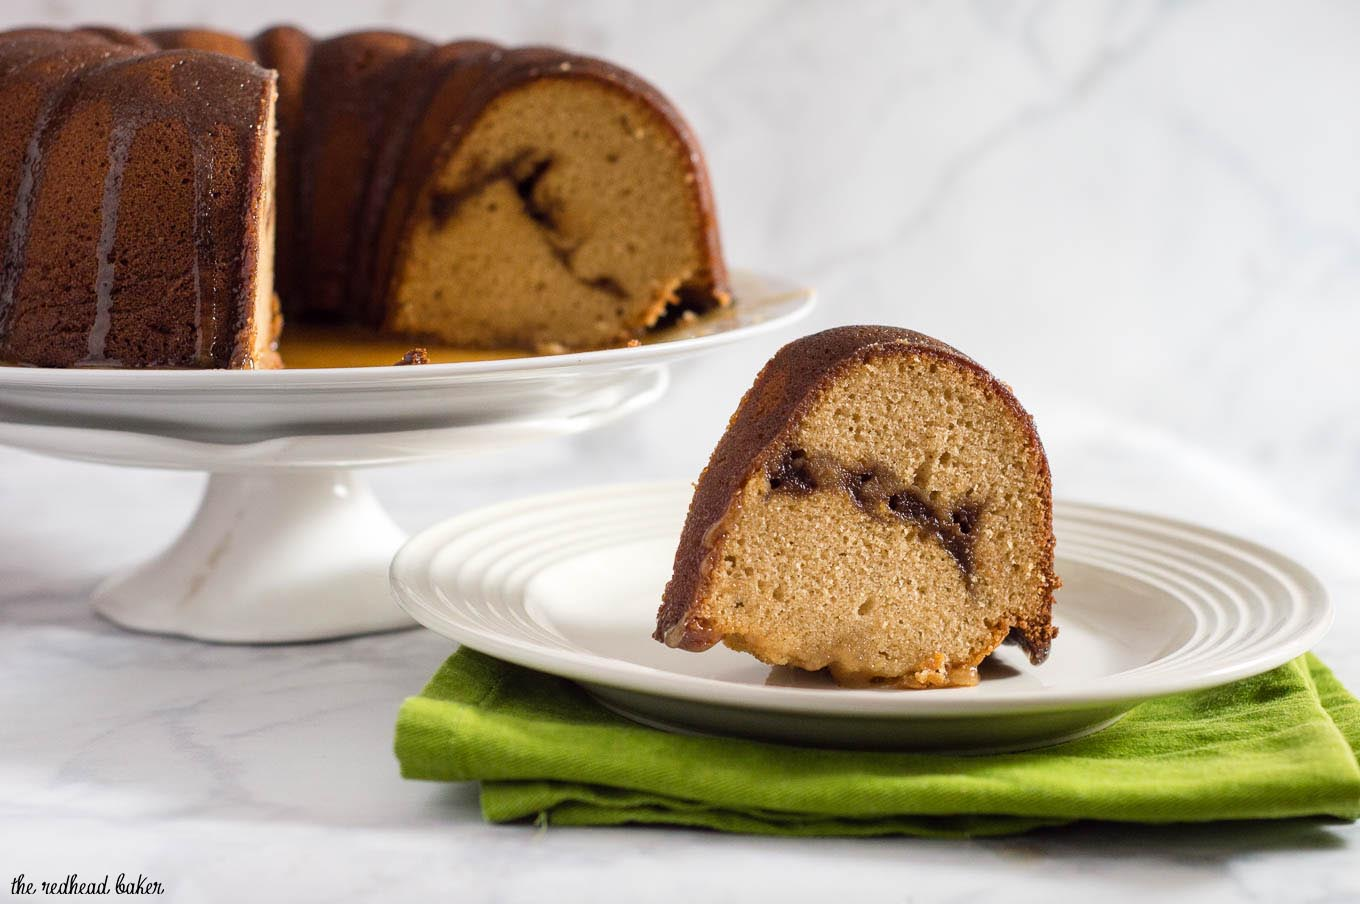 Apple butter pound cake has delicious apple flavor with hints of cinnamon, a ripple of apple butter, and a creamy caramel glaze.